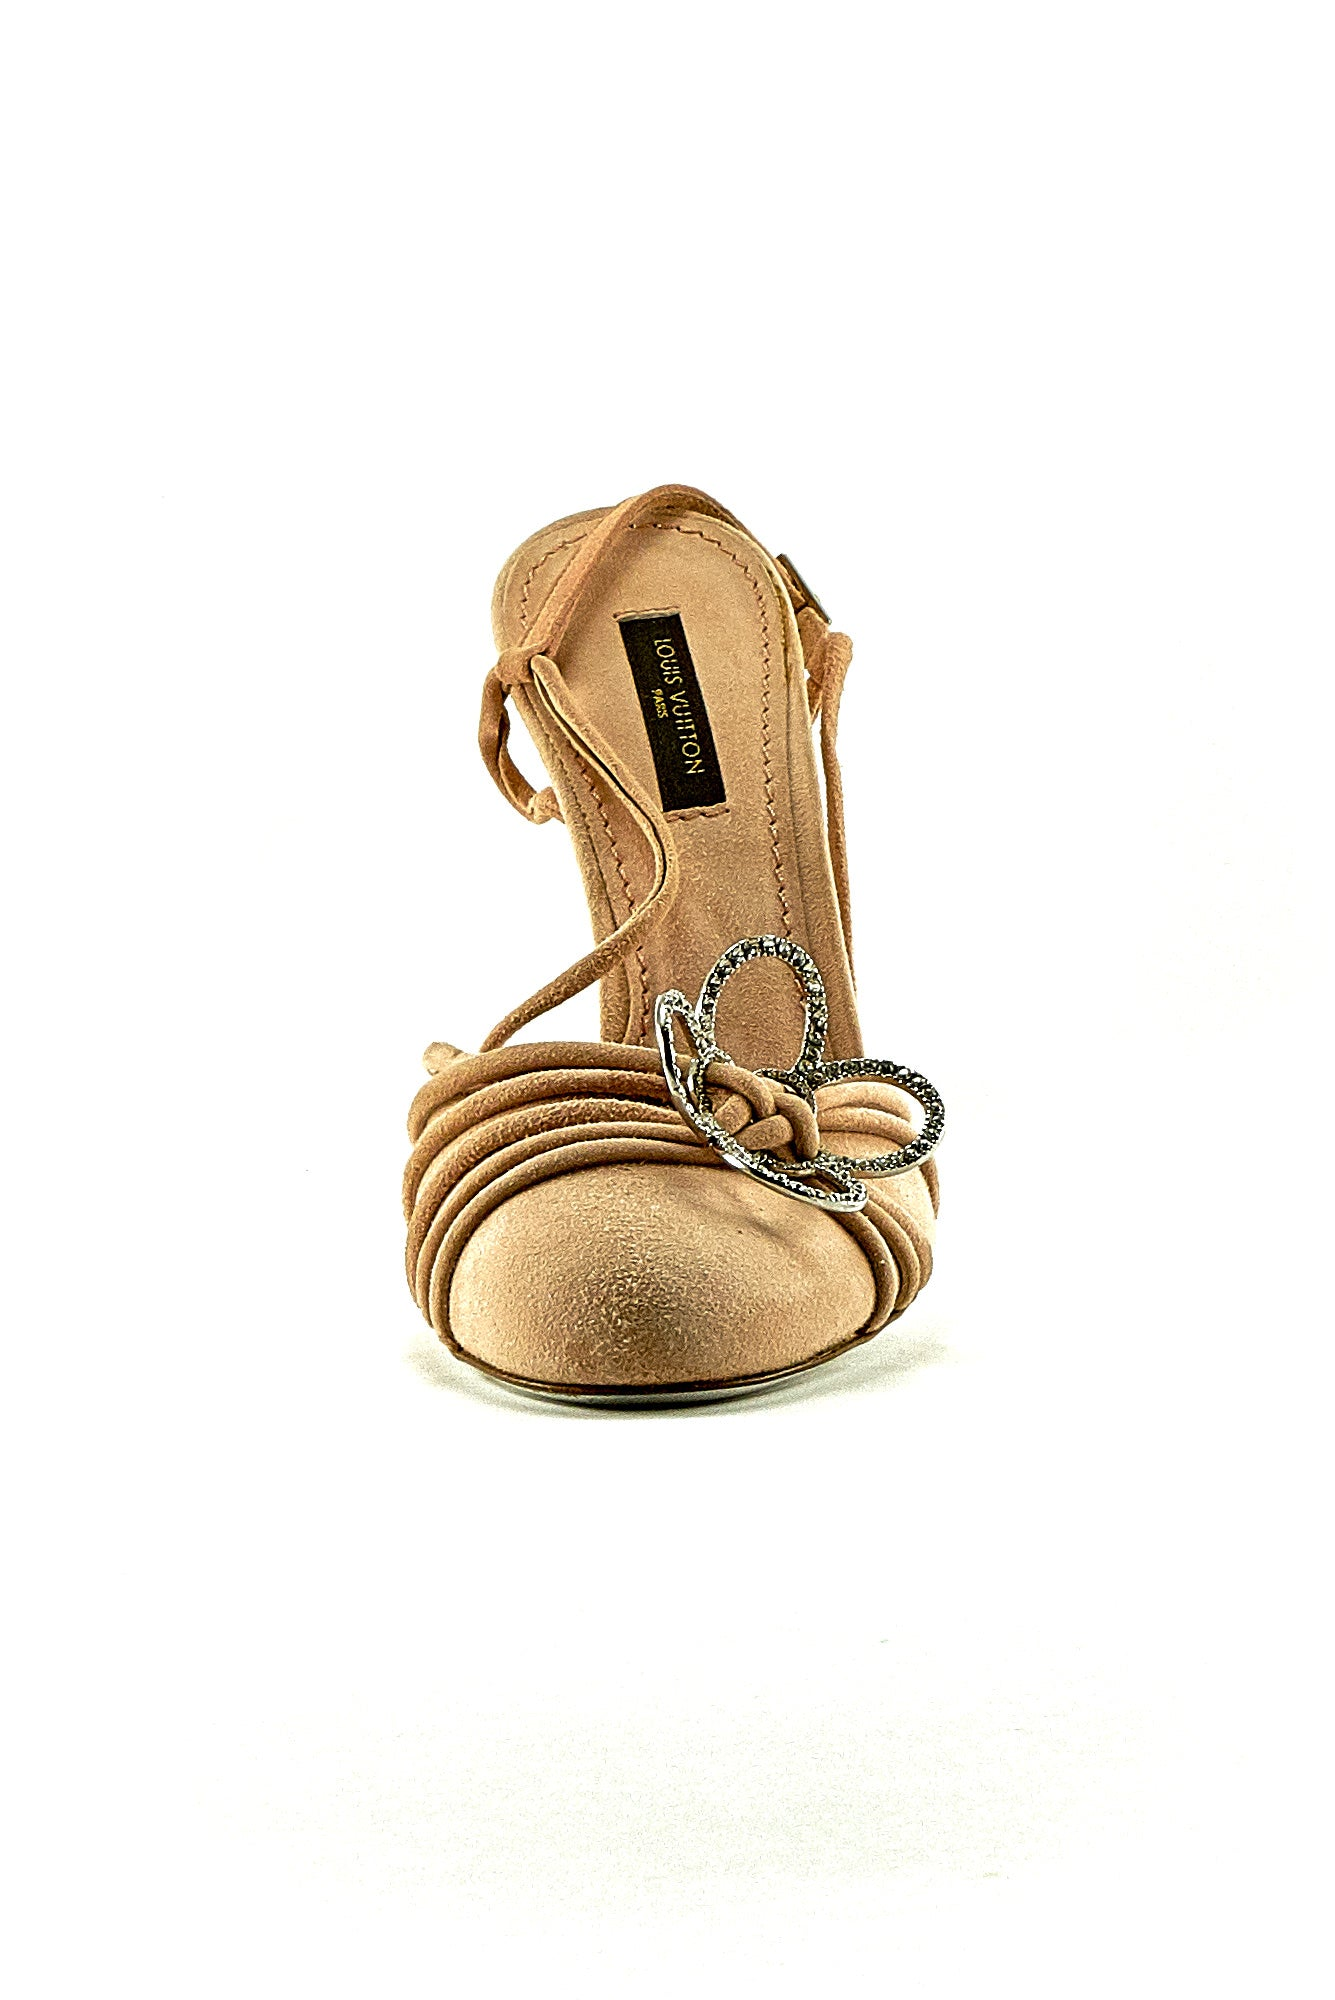 LOUIS VUITTON SUEDE SLING BACK SANDALS